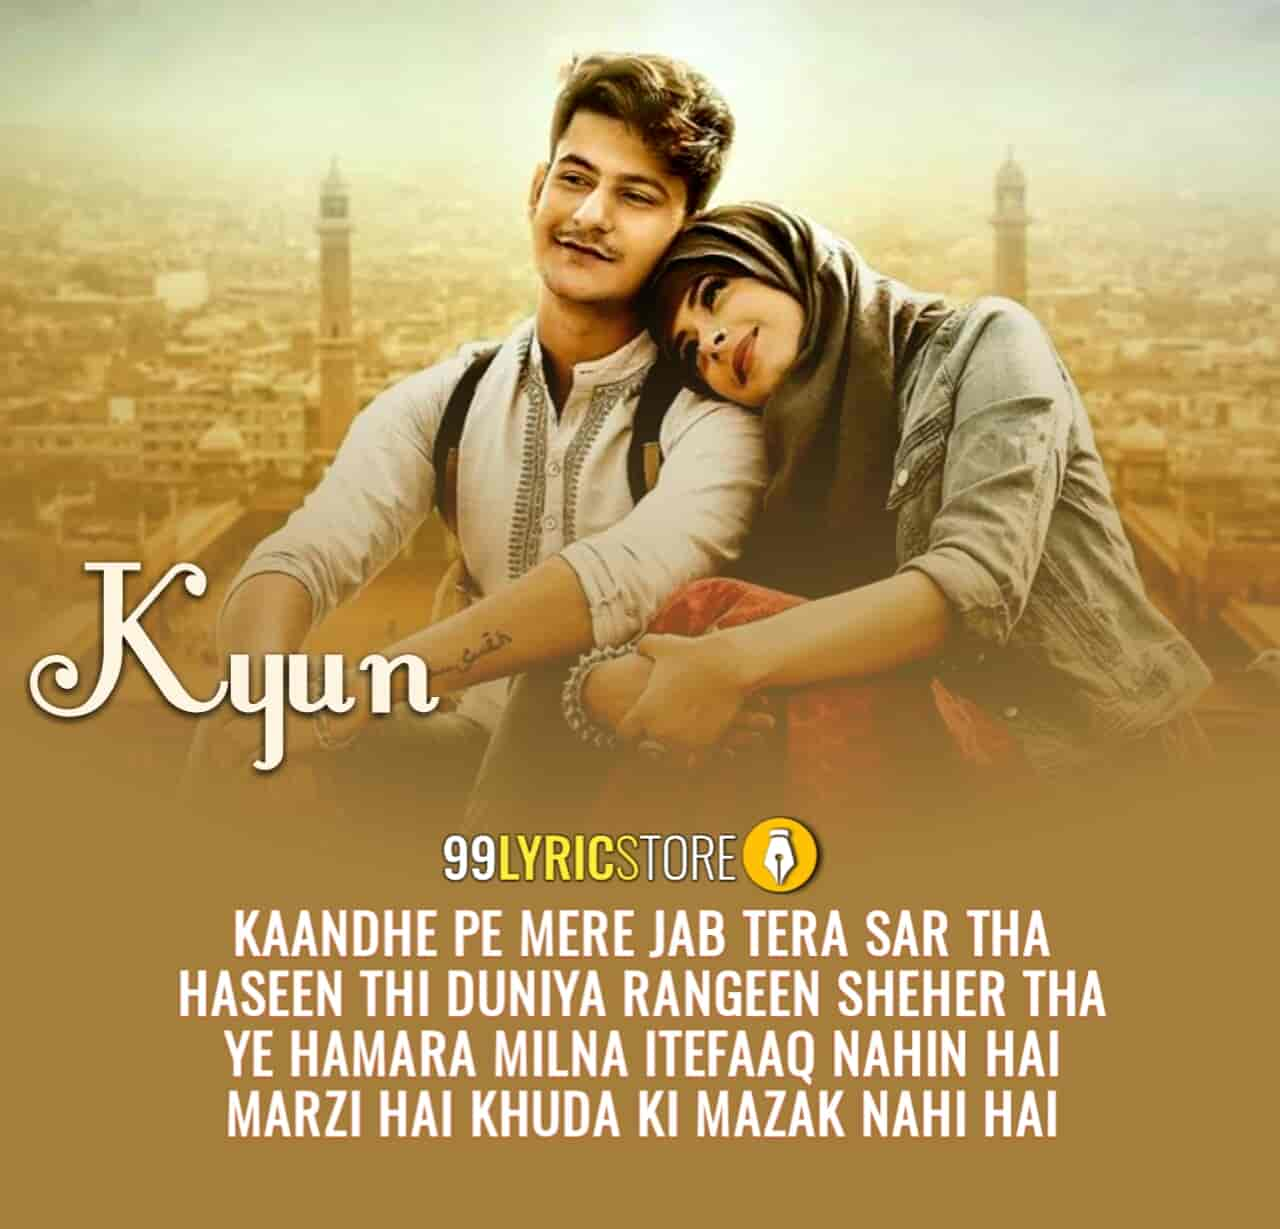 Kyun Lyrics Images Manjul Khattar